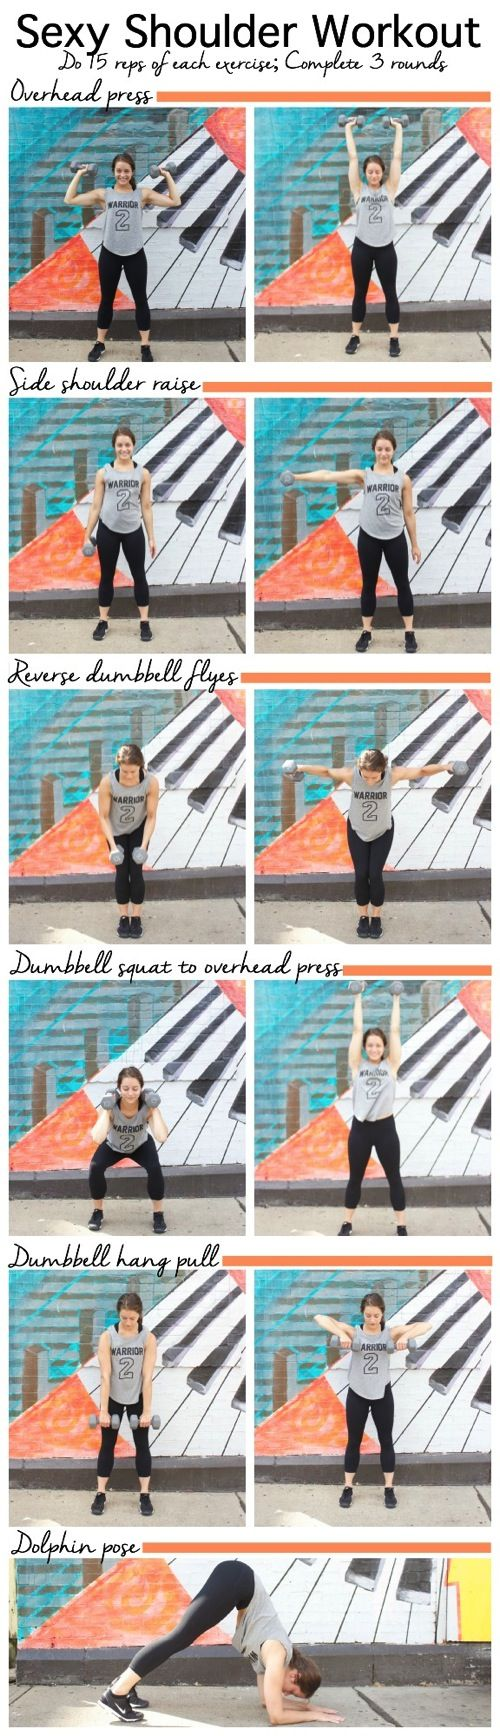 Sexy Shoulder Workout-sculpt your shoulders with this quick shoulder strengthening sequence #workout #fitness